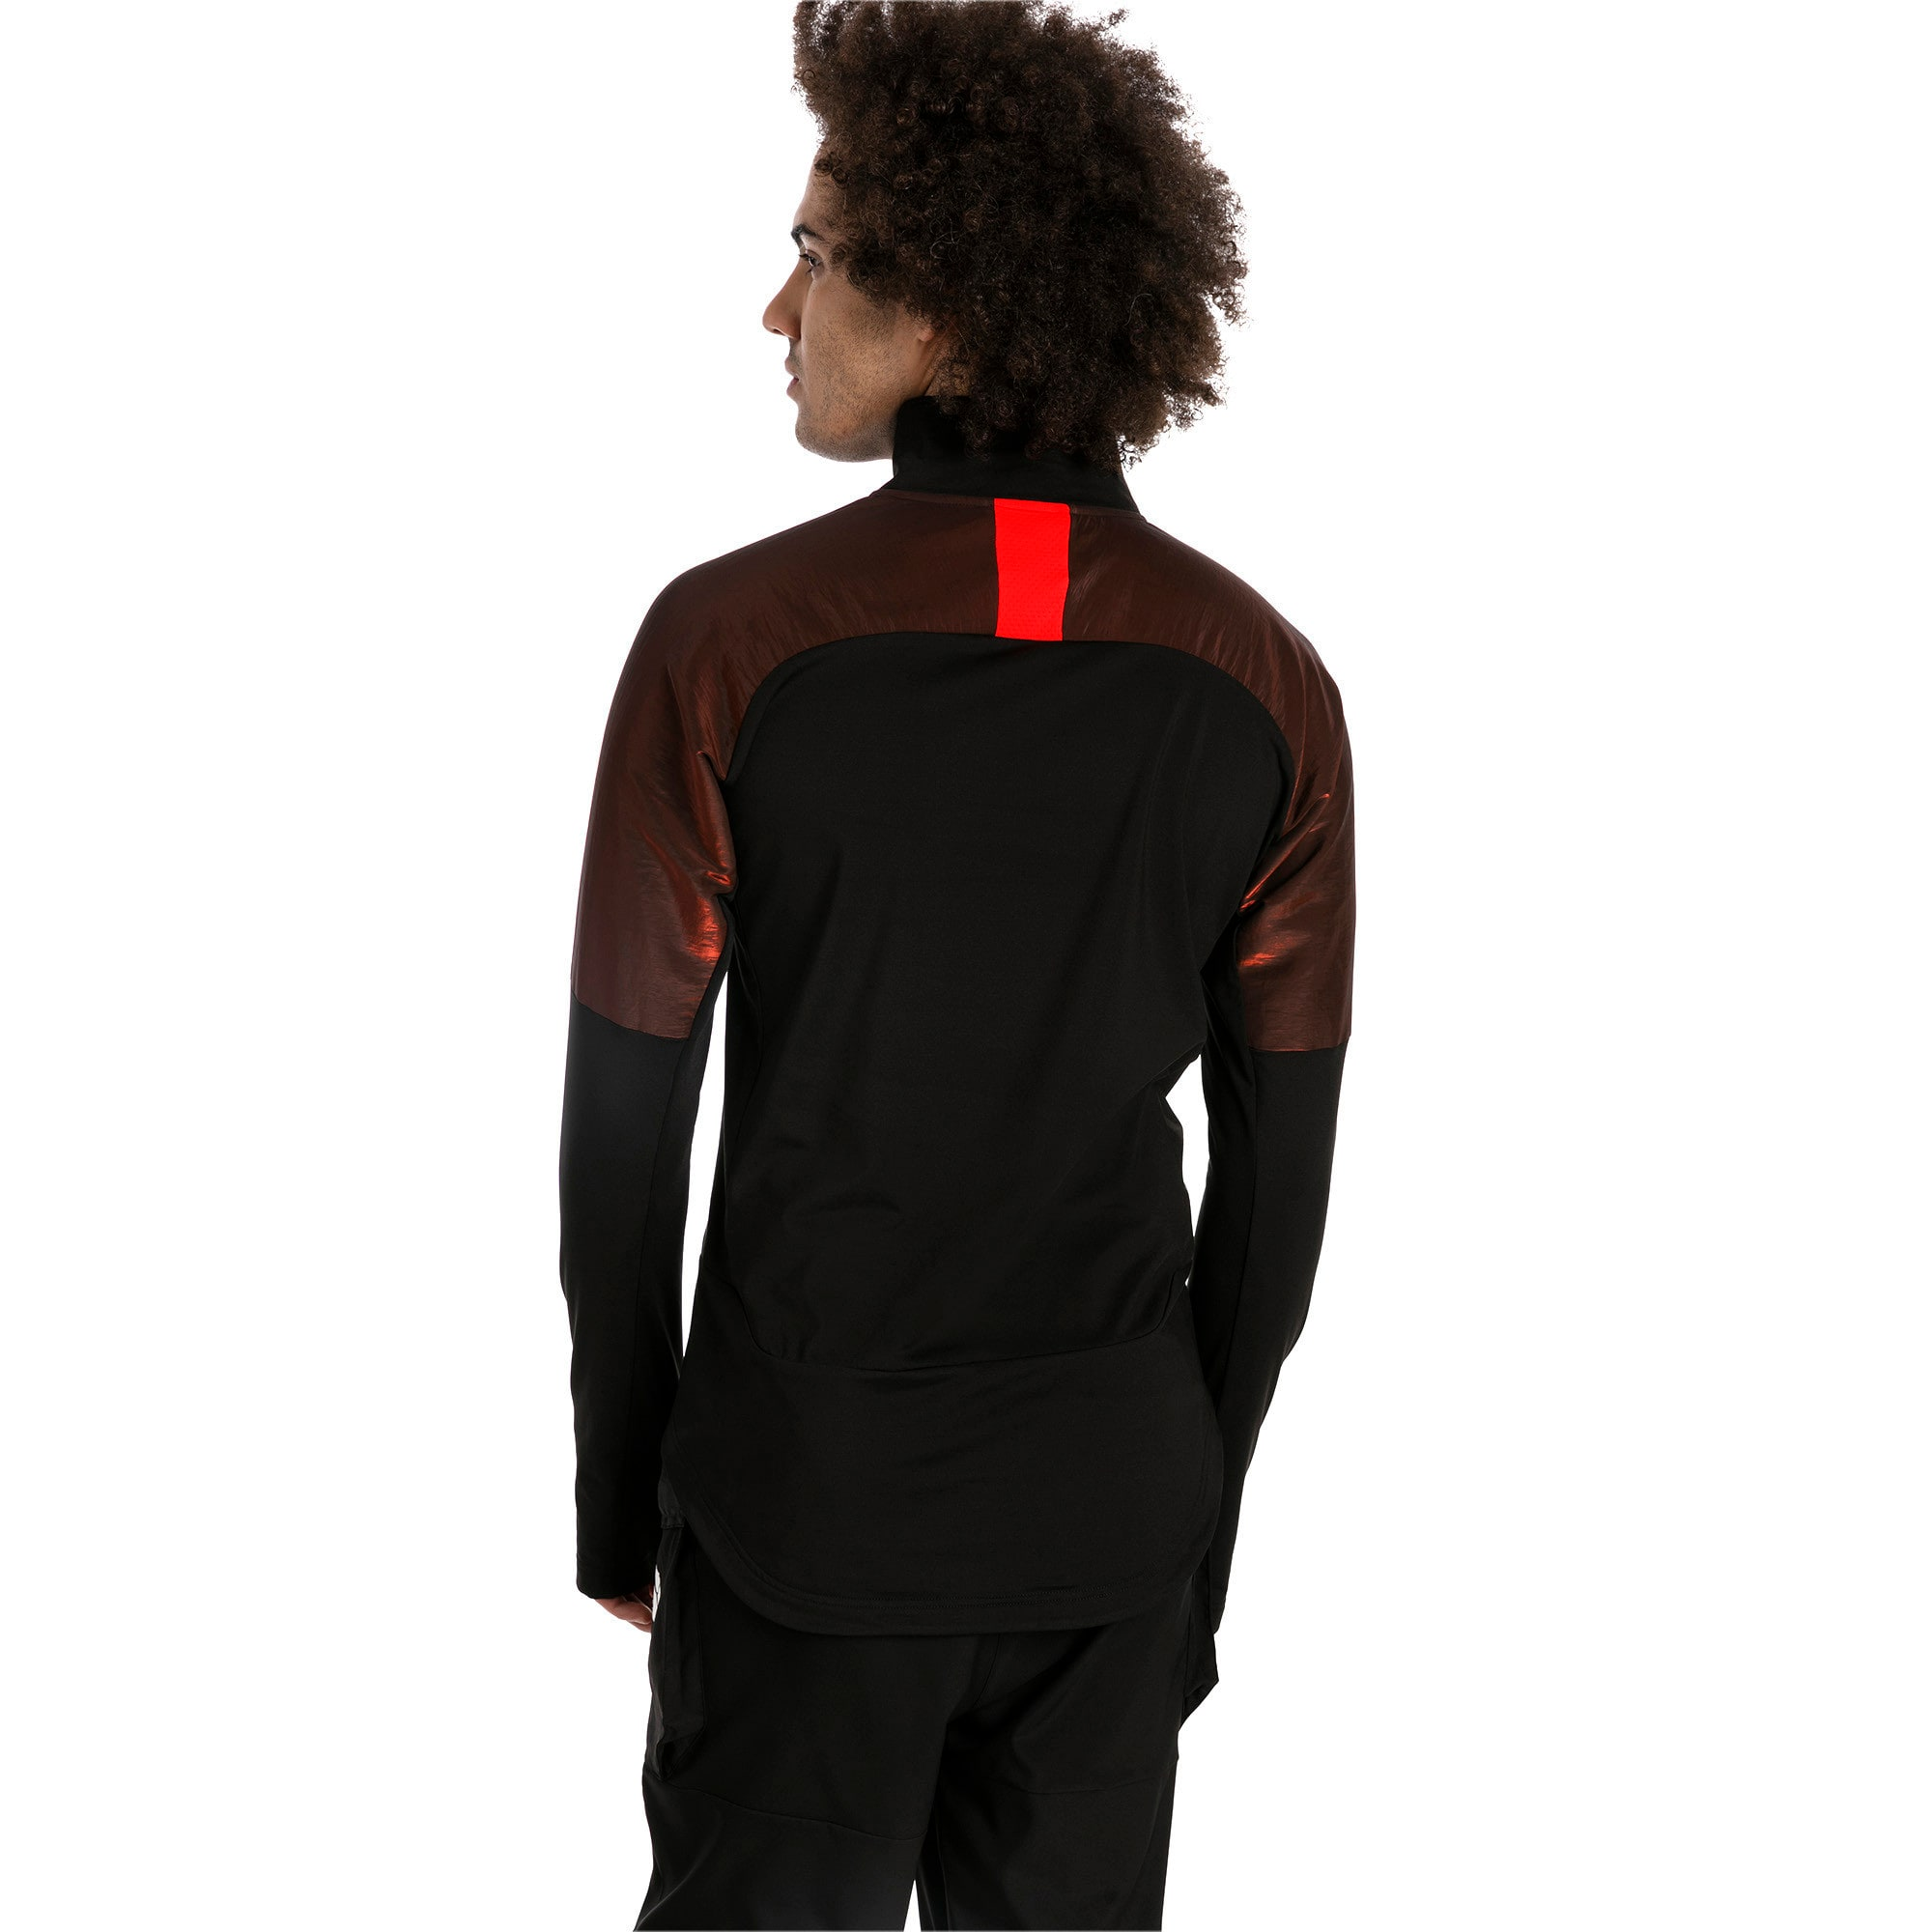 Thumbnail 2 of ftblNXT 1/4 Zip Herren Sweatshirt, Puma Black-Red Blast, medium